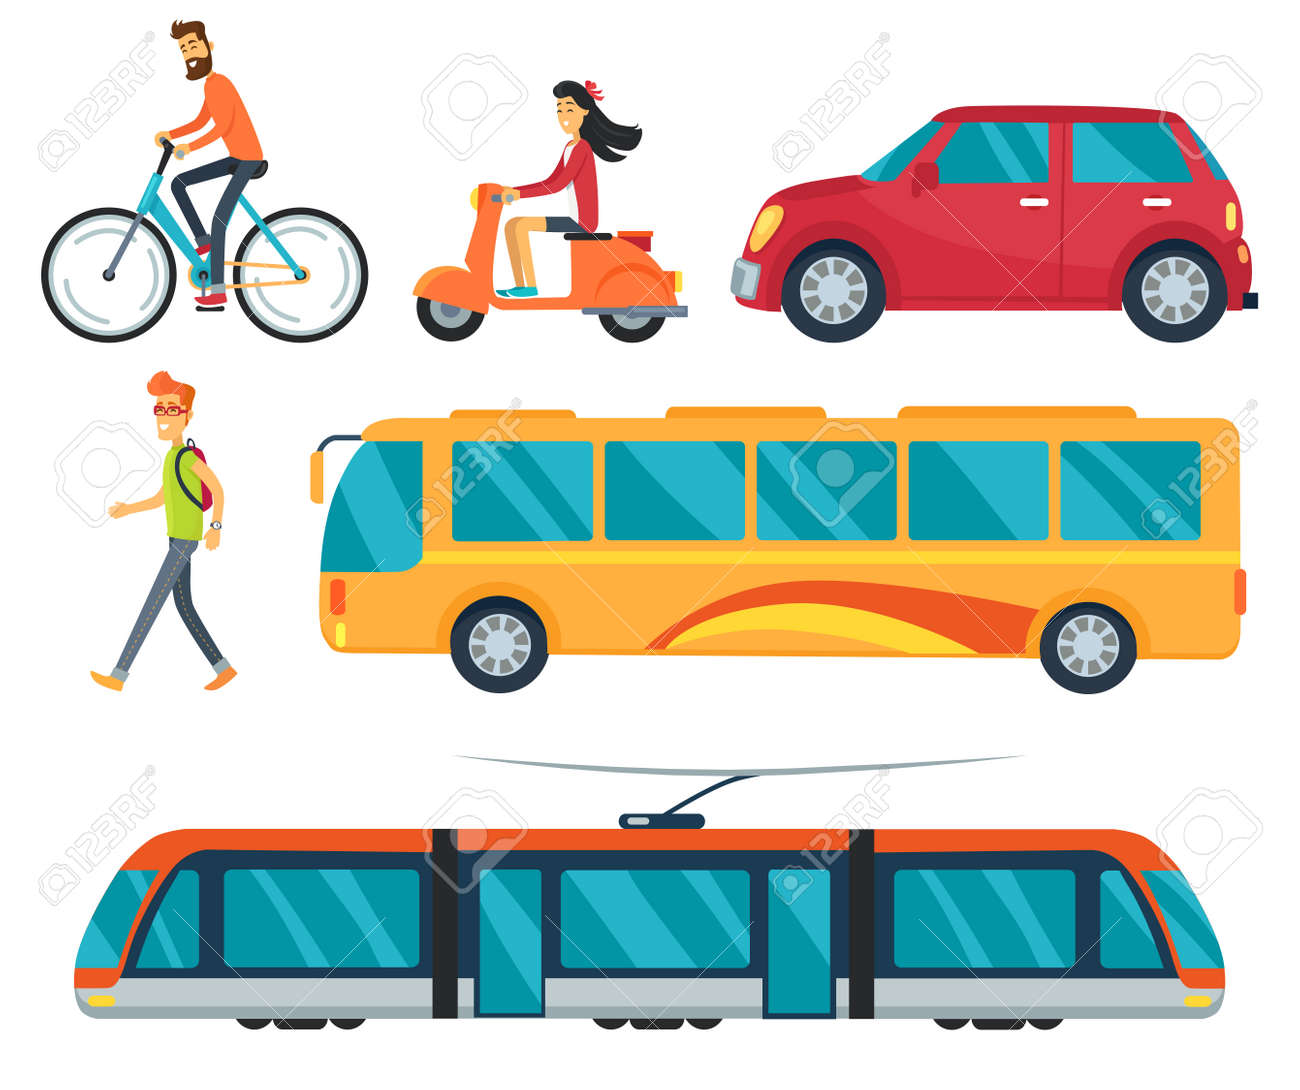 Different types of transport, icons of walking boy, cycling man, car and bus, train and woman on moped vector illustration isolated on white - 90314799